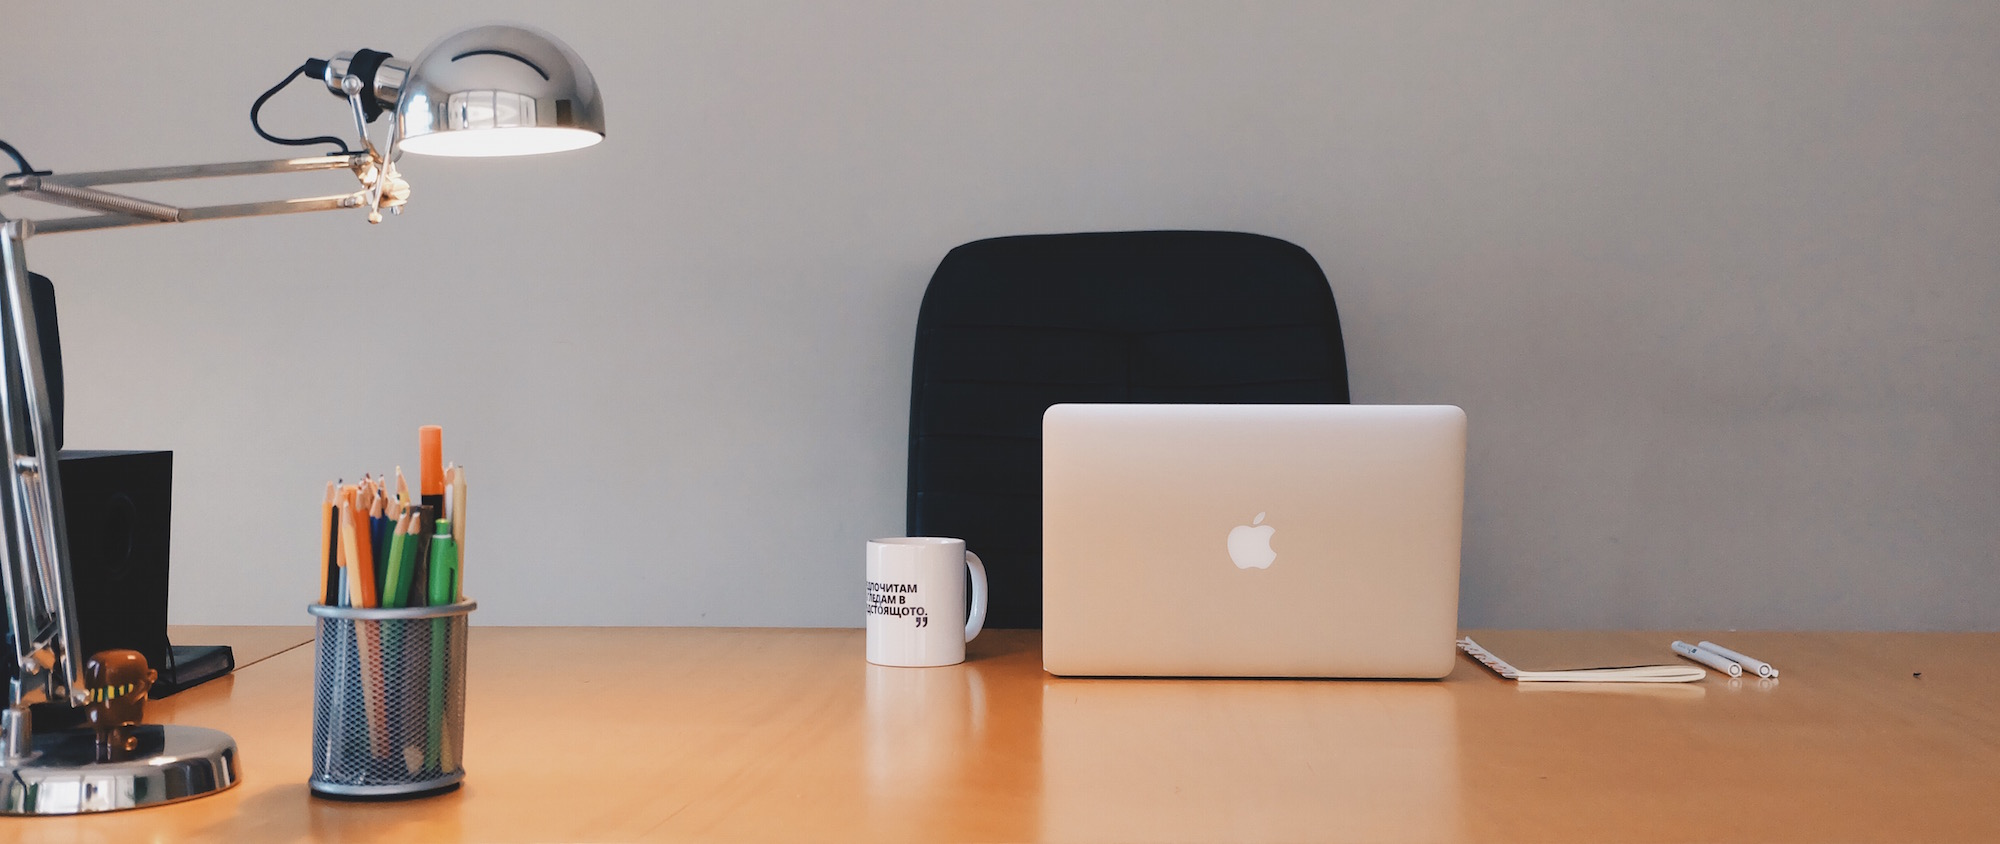 Desk with computer, lamp, and mug